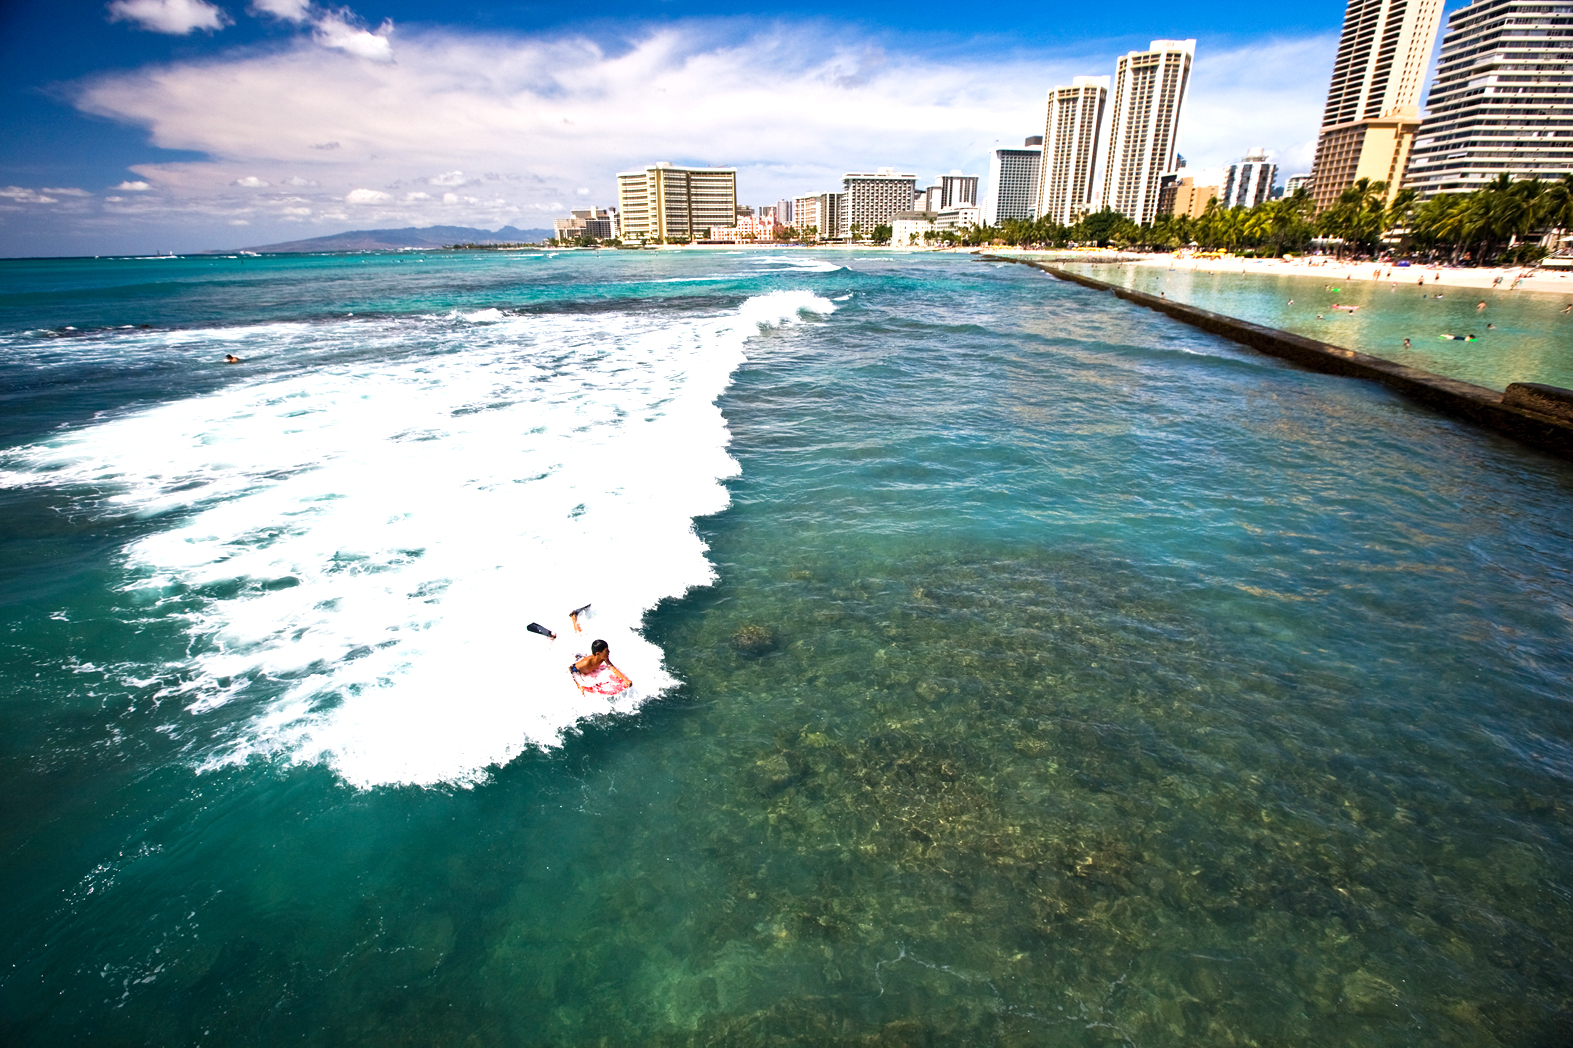 hawaii experience oahu surfing waikiki tourism